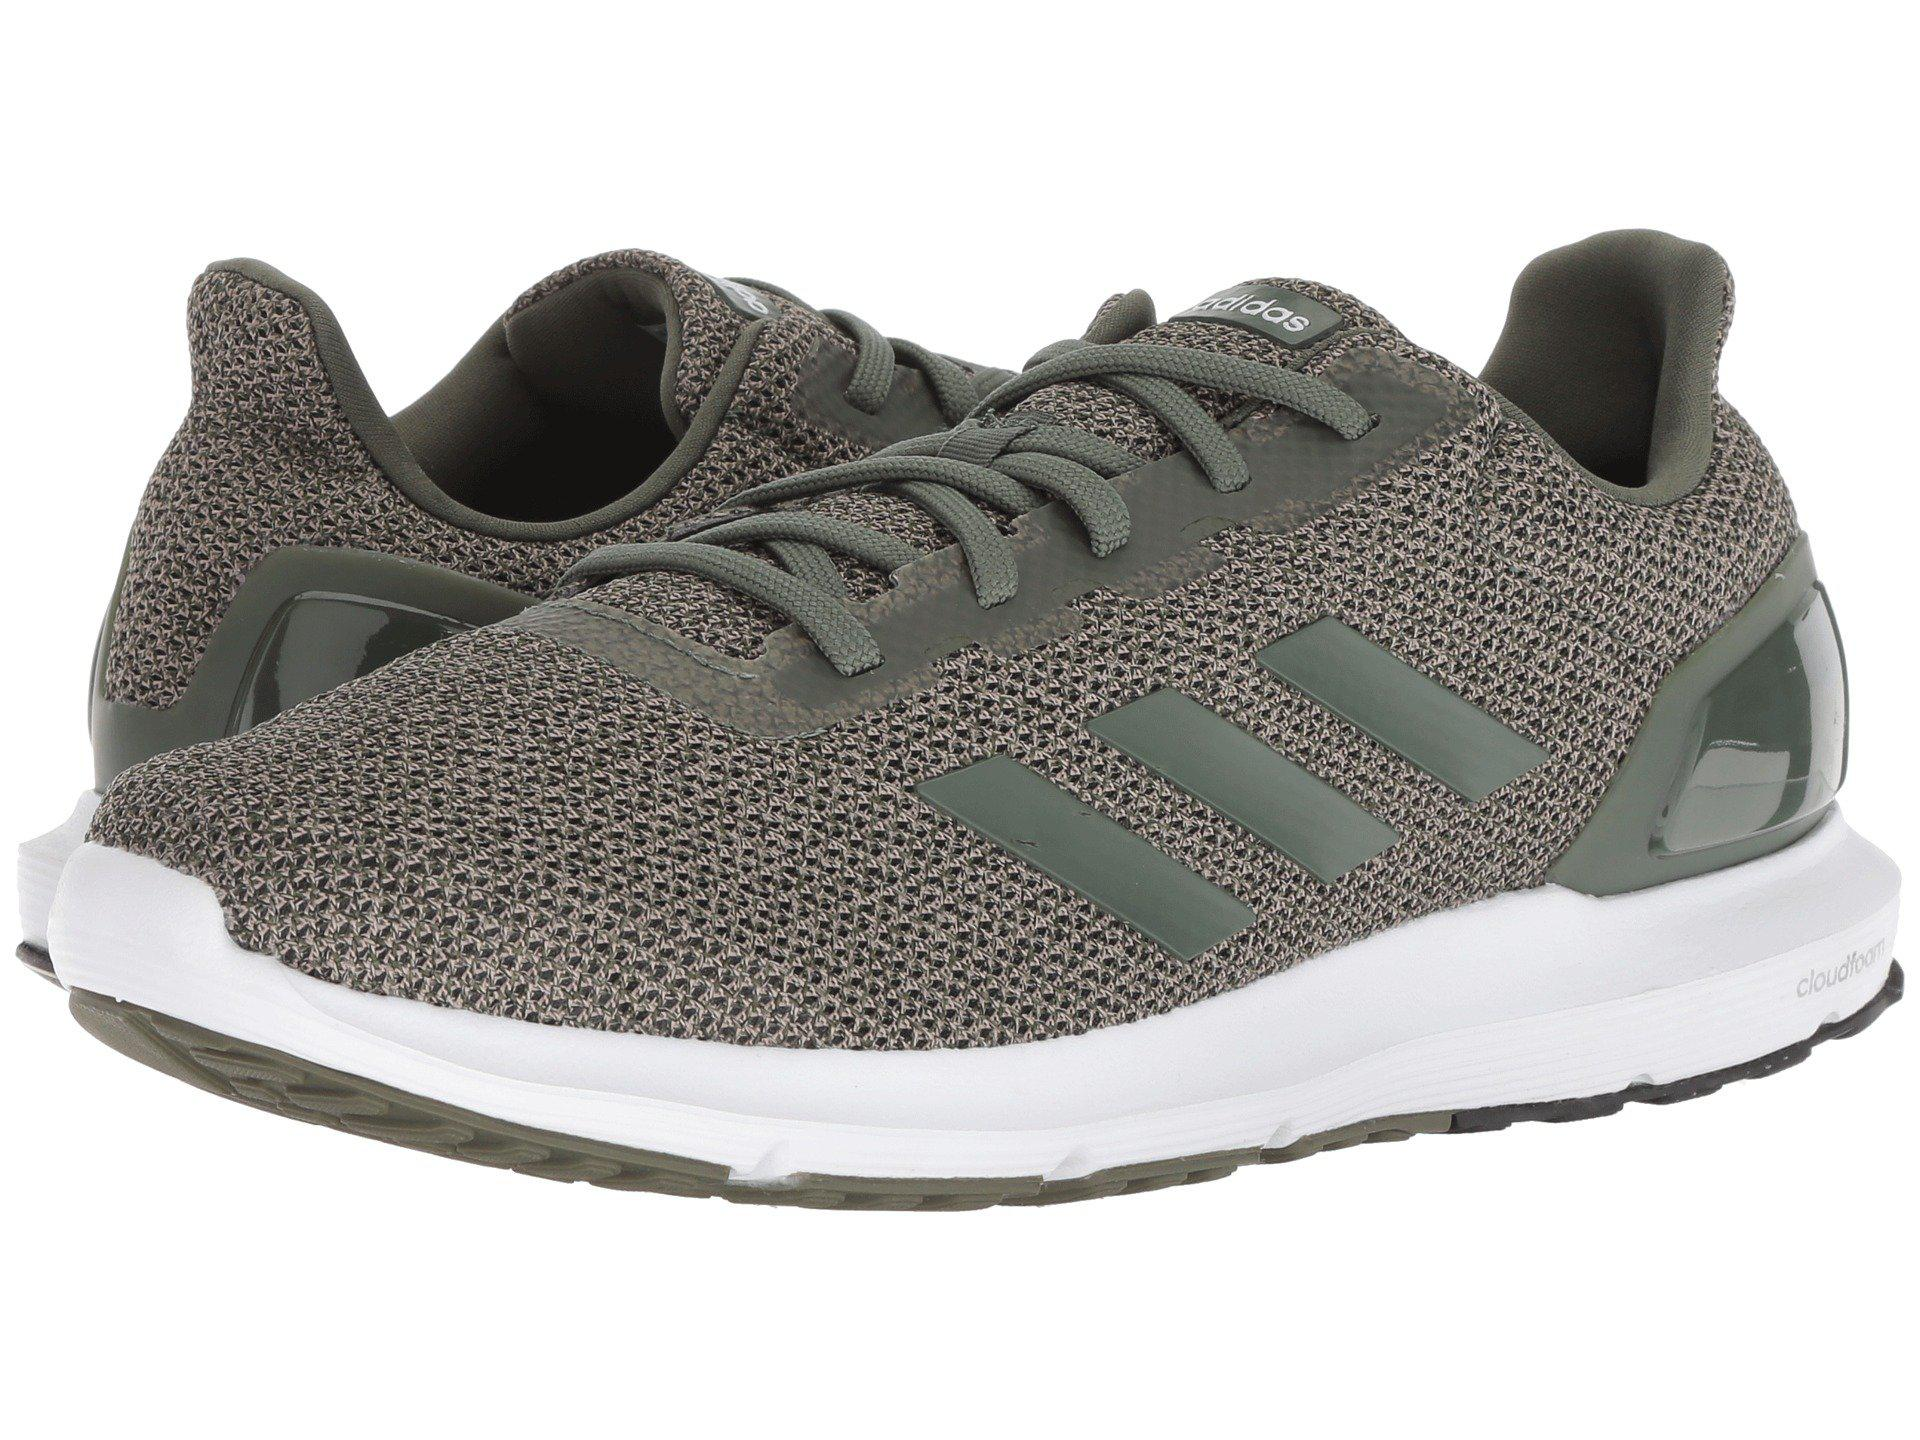 5704442afd81 Lyst - adidas Originals Cosmic 2 Shoes in Green for Men - Save 11%